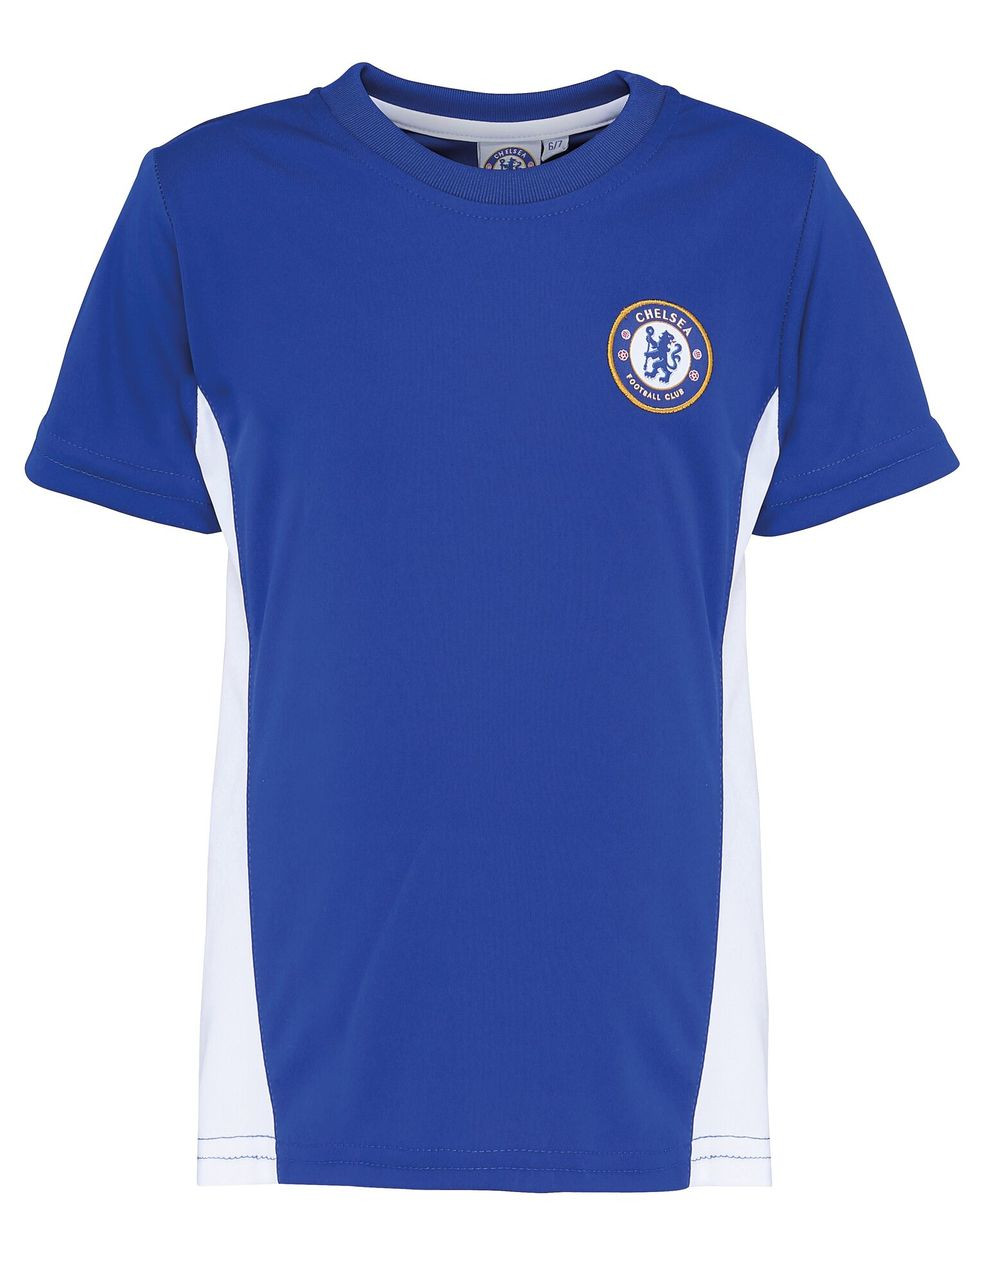 Home · FOOTBALL MERCHANDISE · CHELSEA FC  Chelsea FC Adults T-Shirt.  OF400SOS 313732d31949